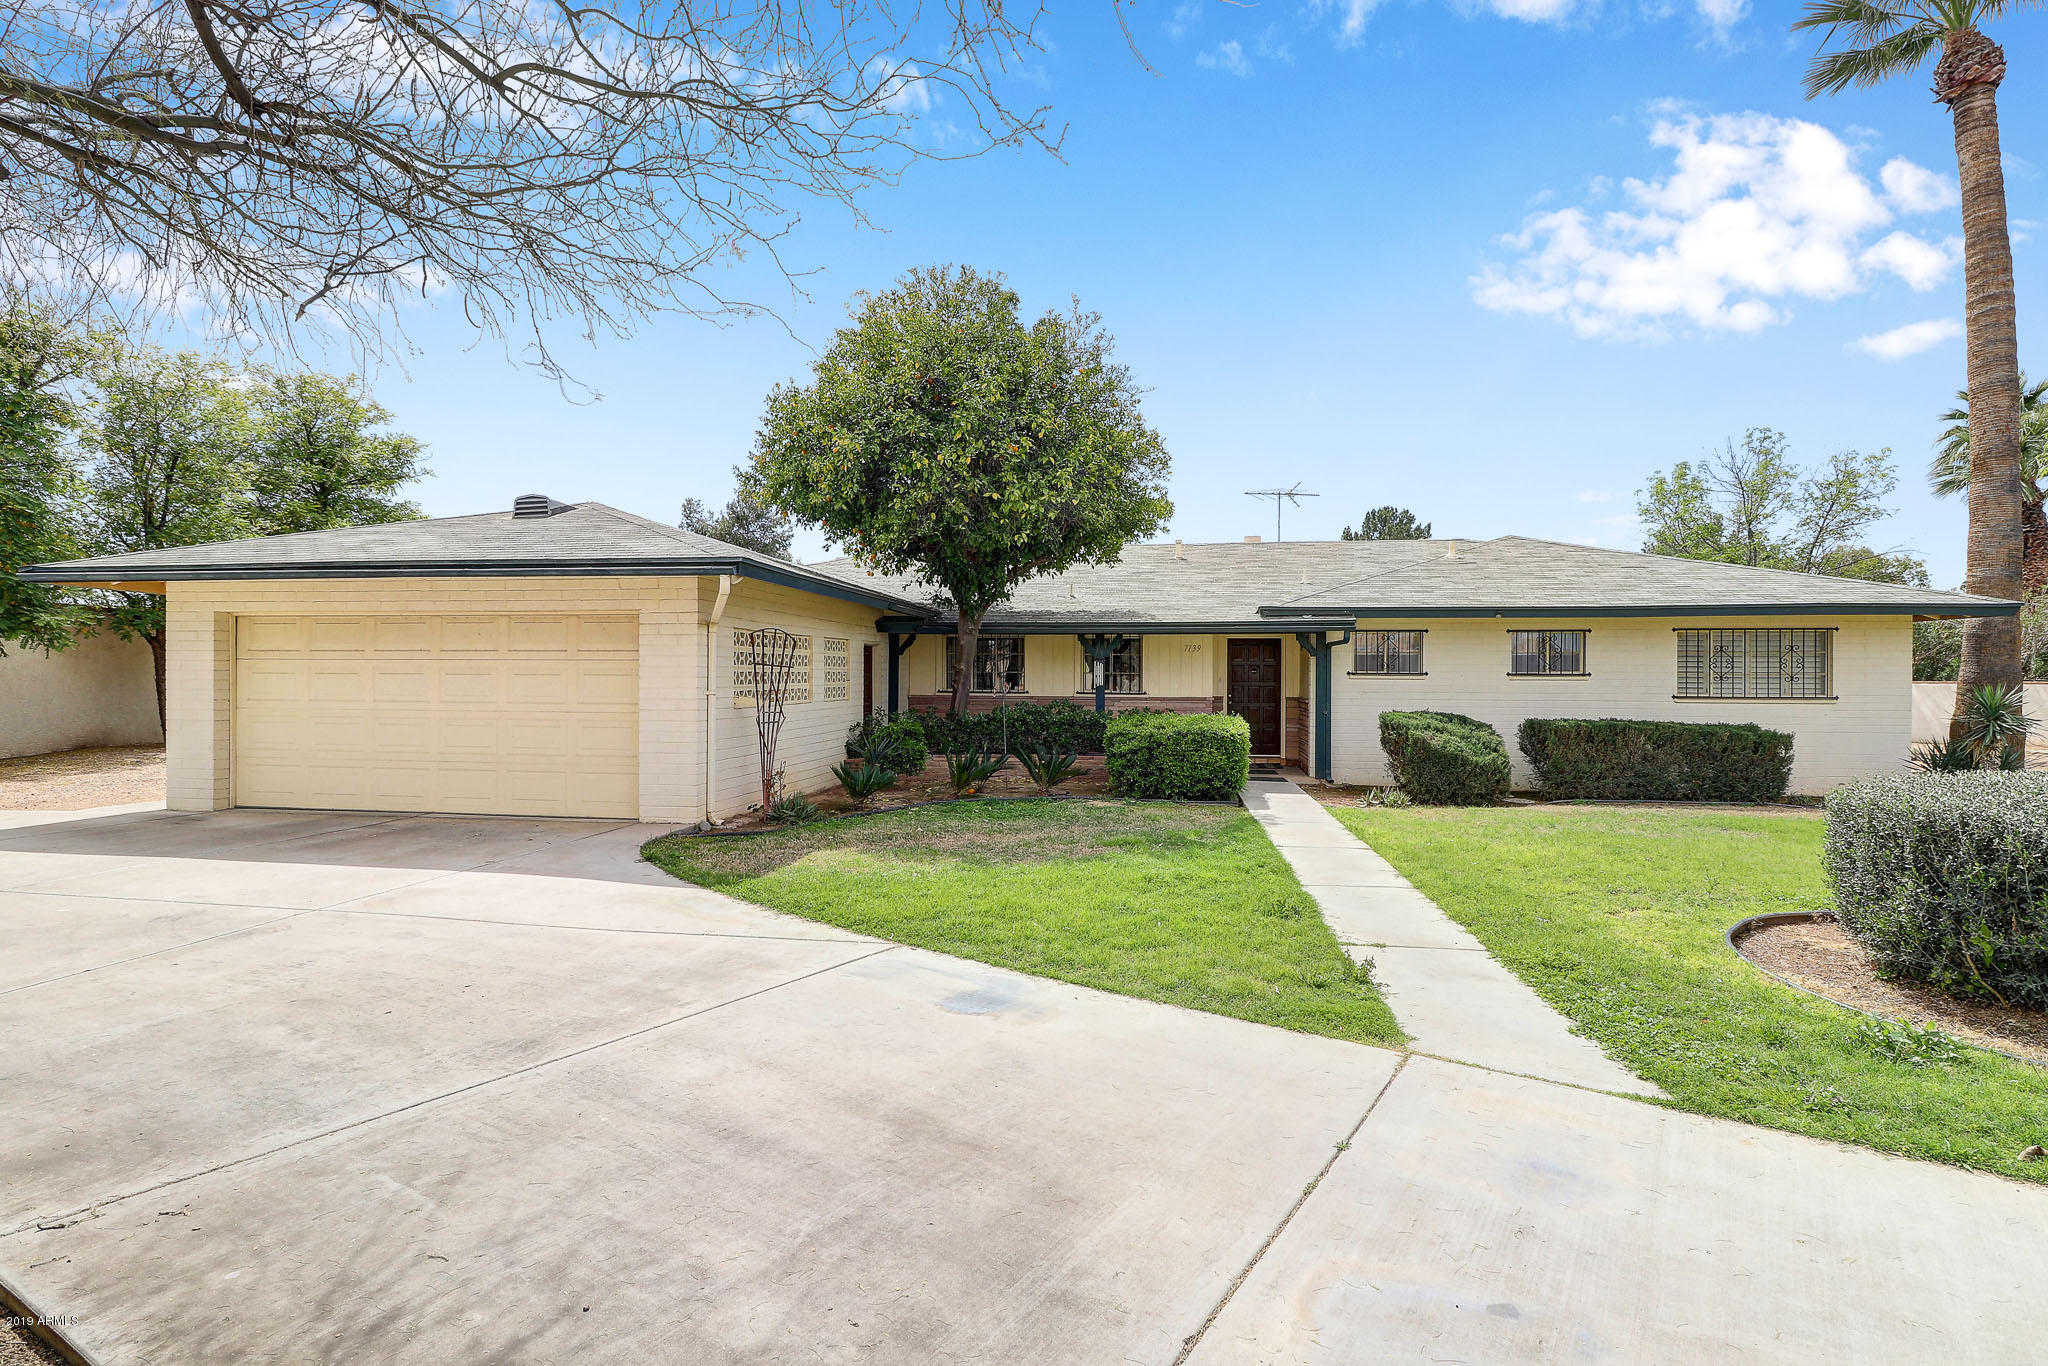 $595,000 - 3Br/2Ba - Home for Sale in Rancho Sunny Vale Lots 1-8, 27-34, Paradise Valley